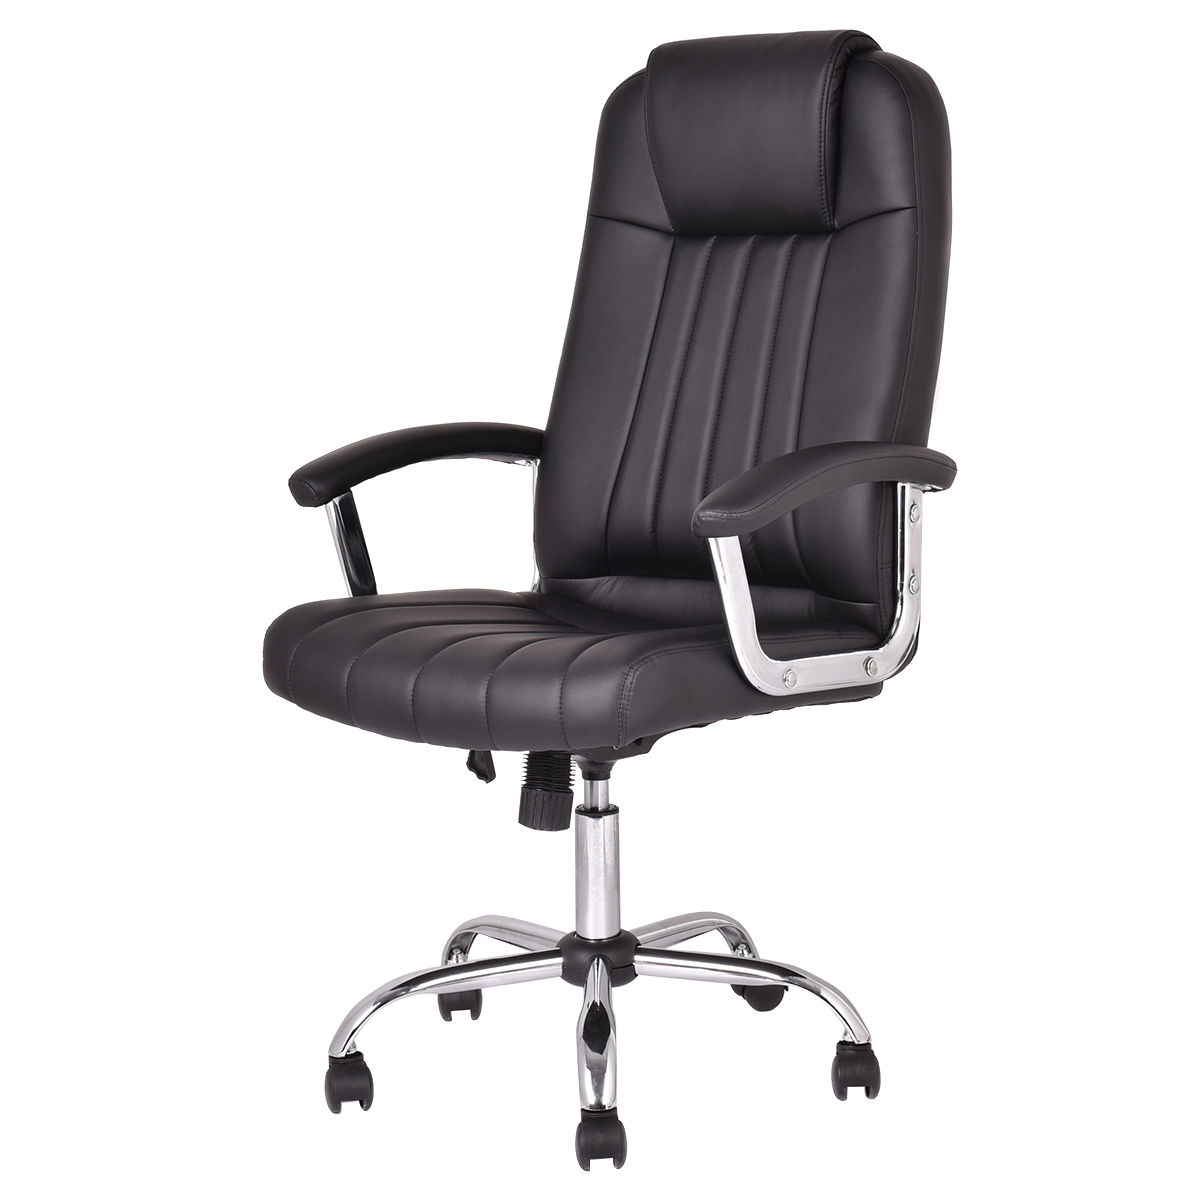 Giantex New Ergonomic PU Leather High Back Gaming Chair Modern Swivel Executive Computer Desk Task Office Chair HW53039 240337 ergonomic chair quality pu wheel household office chair computer chair 3d thick cushion high breathable mesh